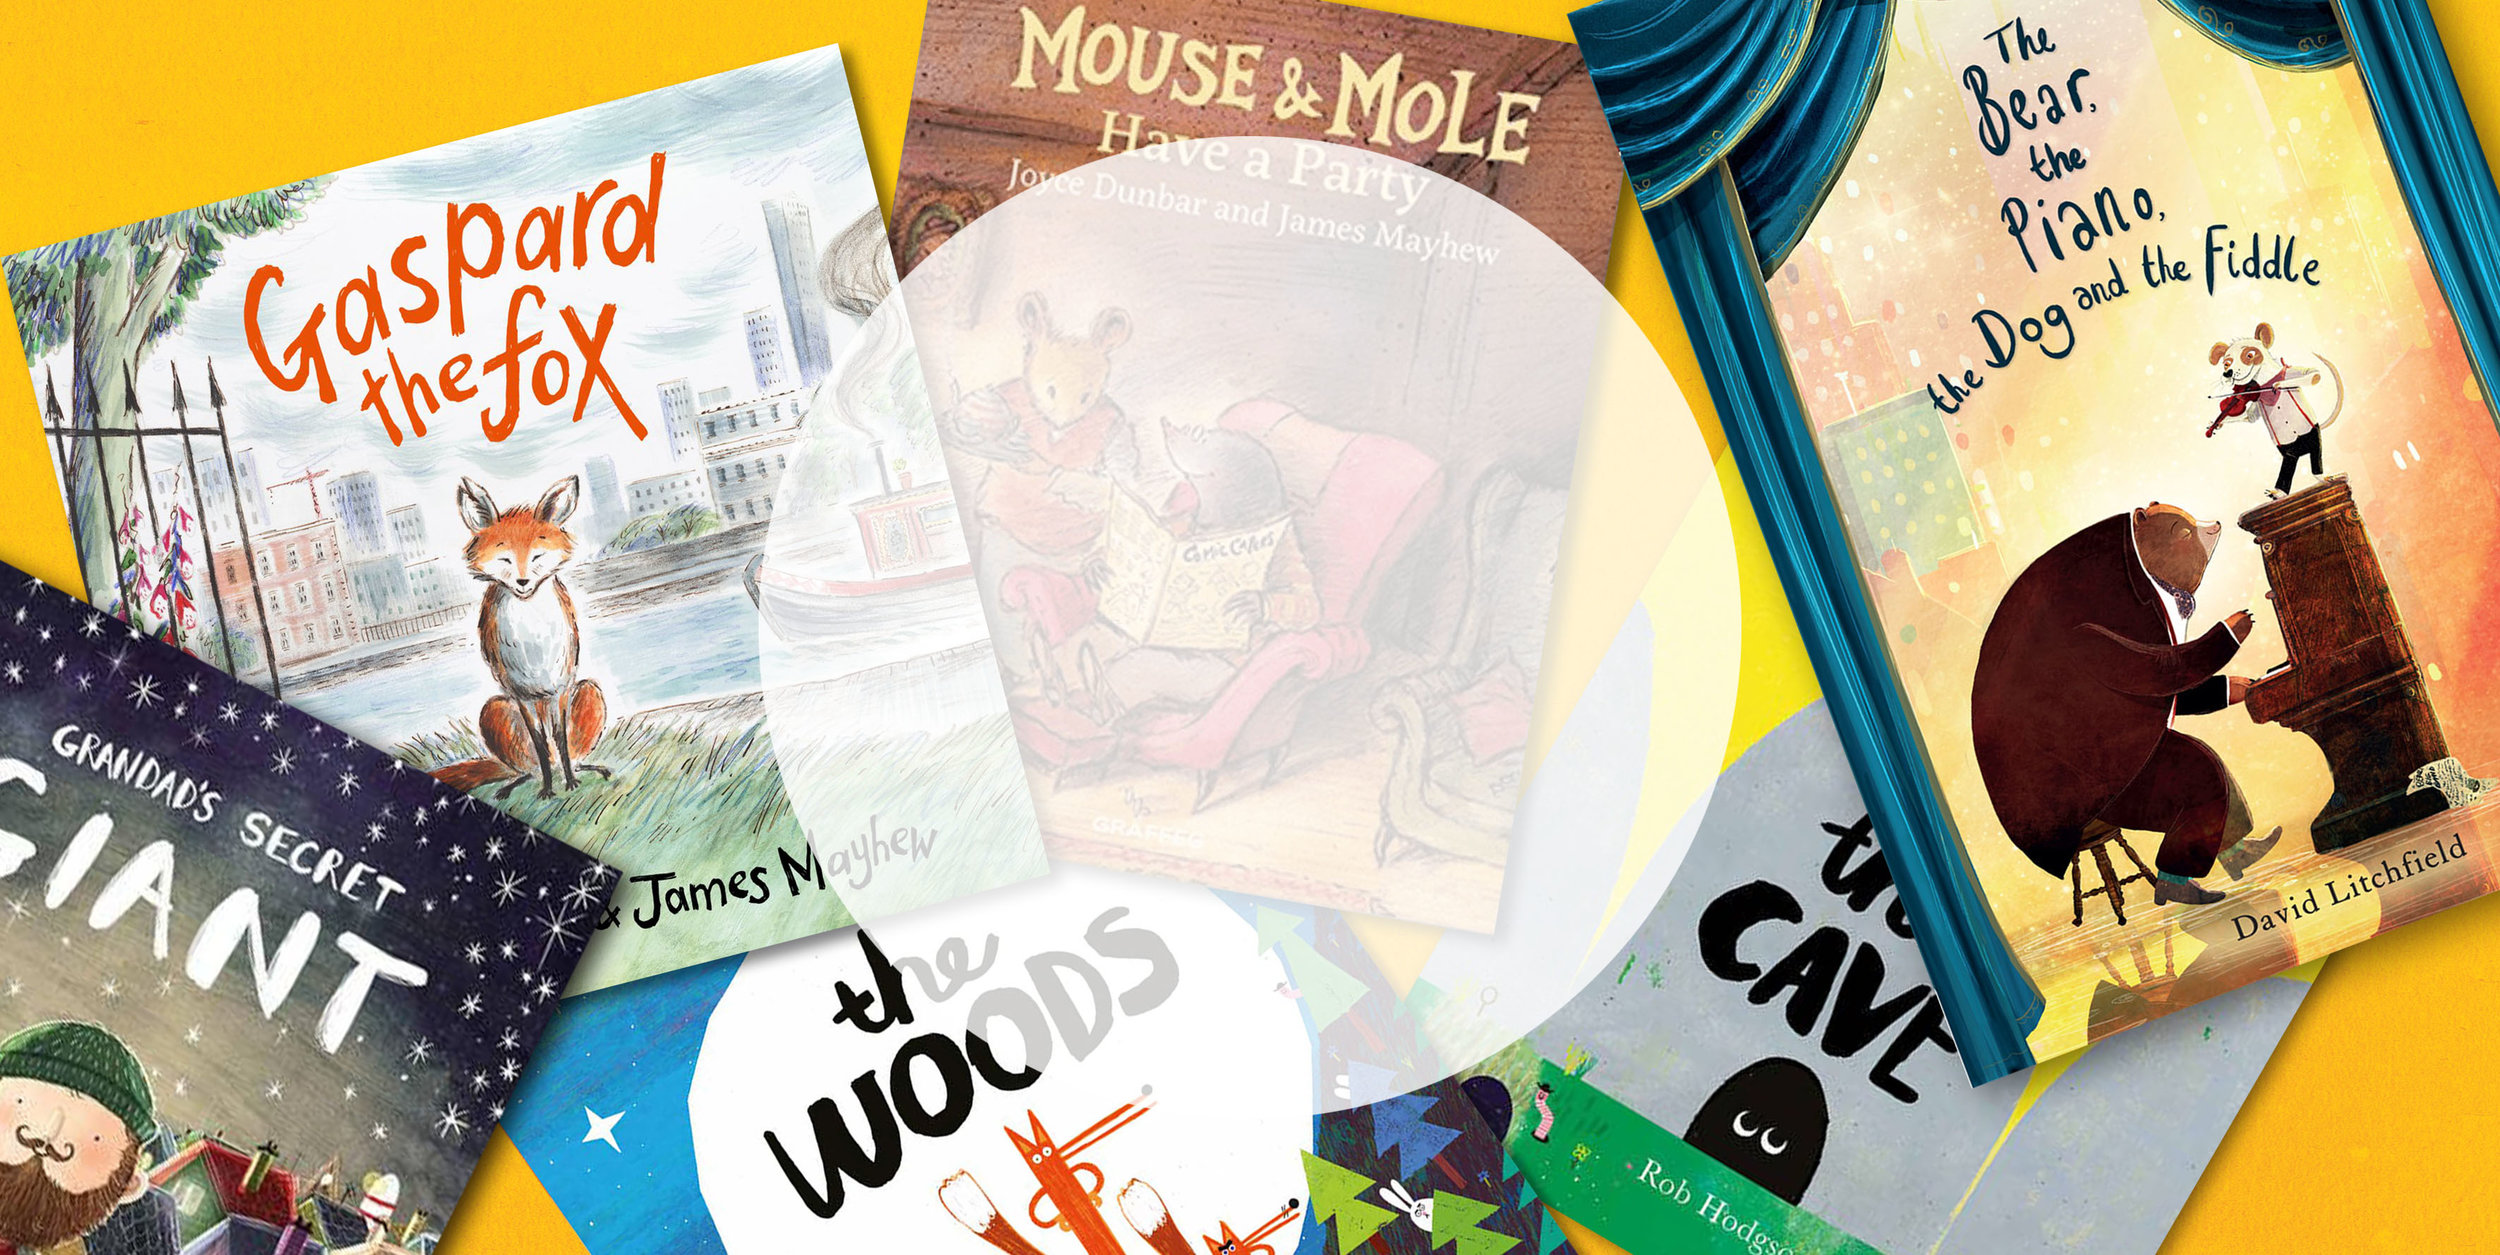 children'sbookcreation - 16TH - 23RD MAY 2020